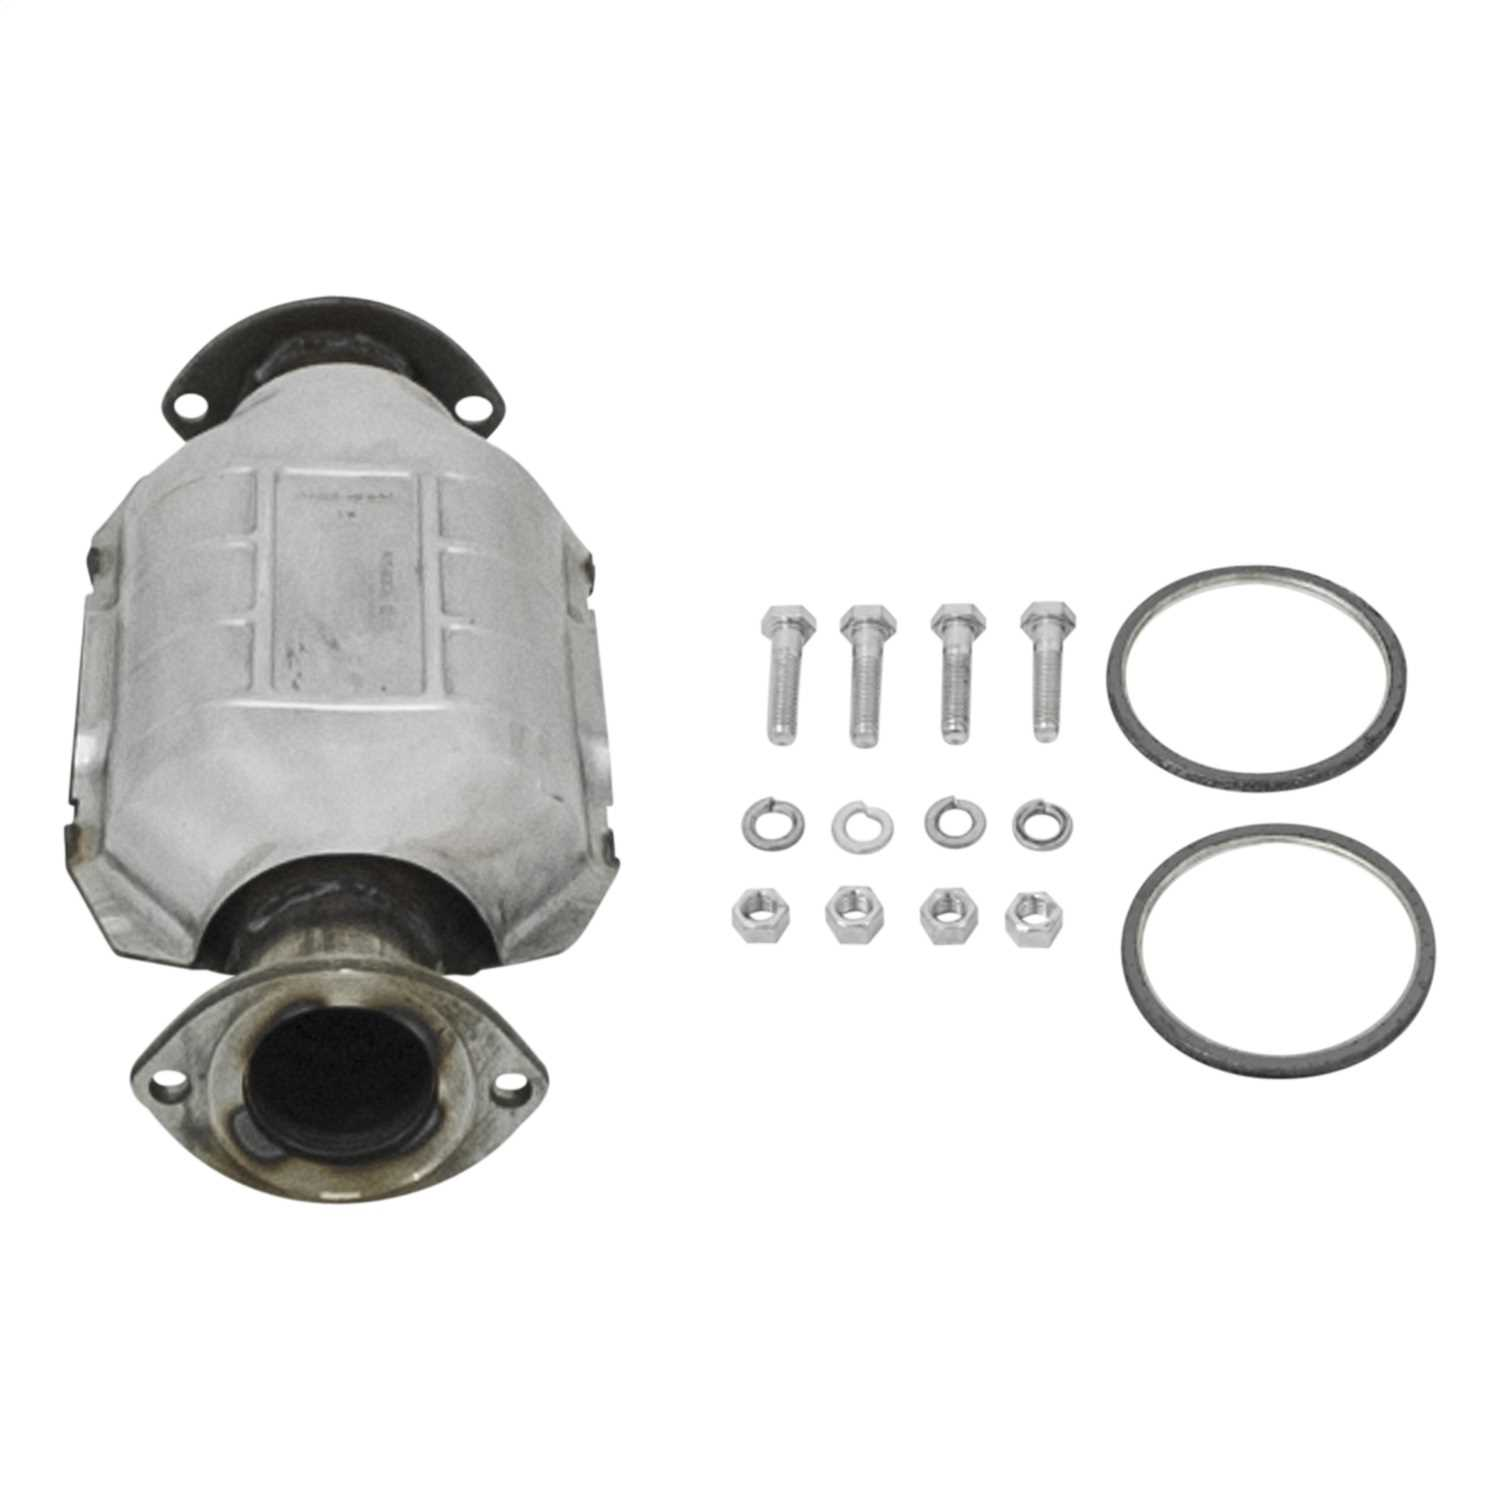 2050003 Flowmaster 49 State Catalytic Converters Direct Fit Catalytic Converter